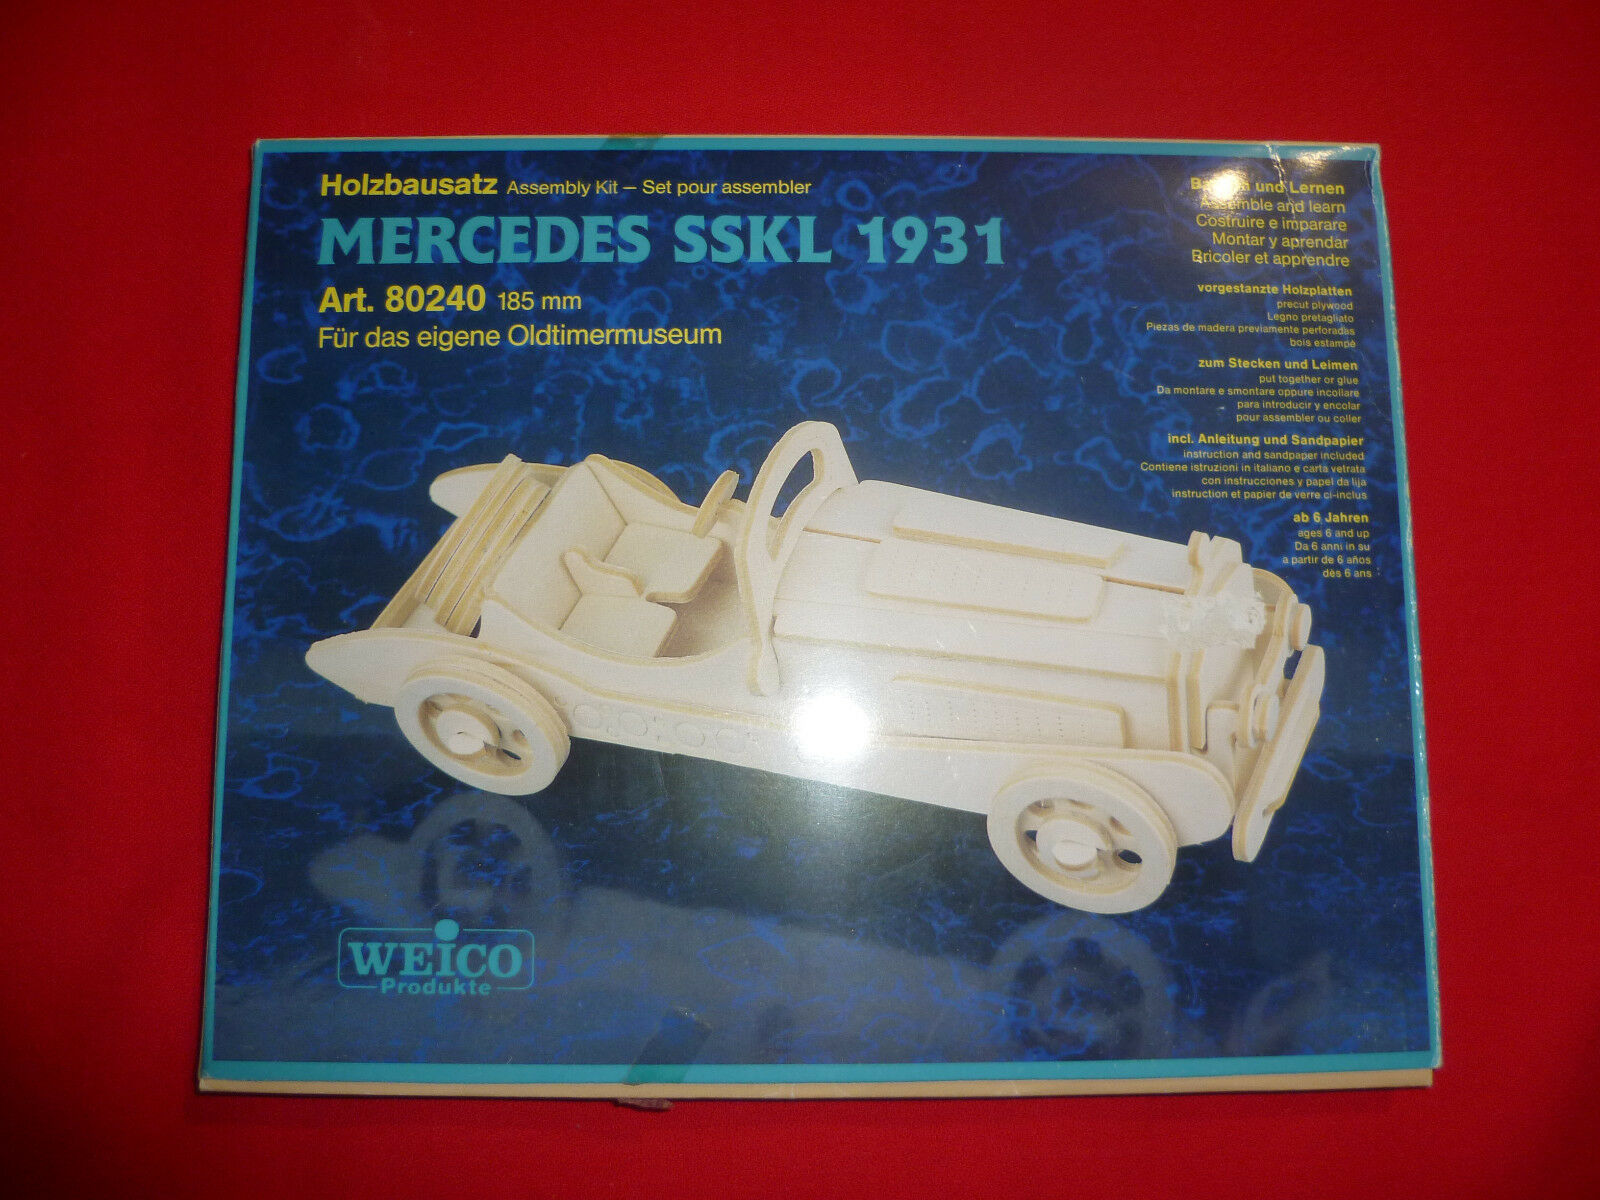 Mercedes WEICO SSKL 1931 Assembly Kit 80240 Legno wood